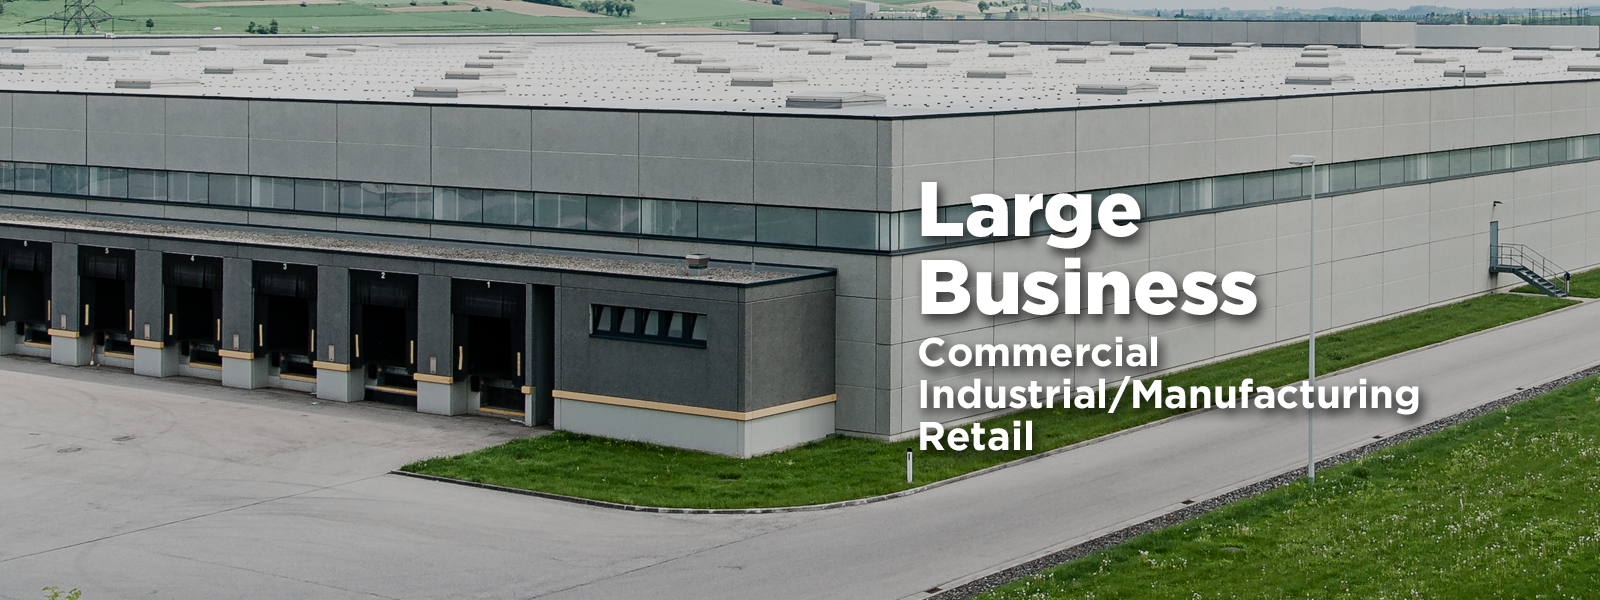 commercial industrial retail